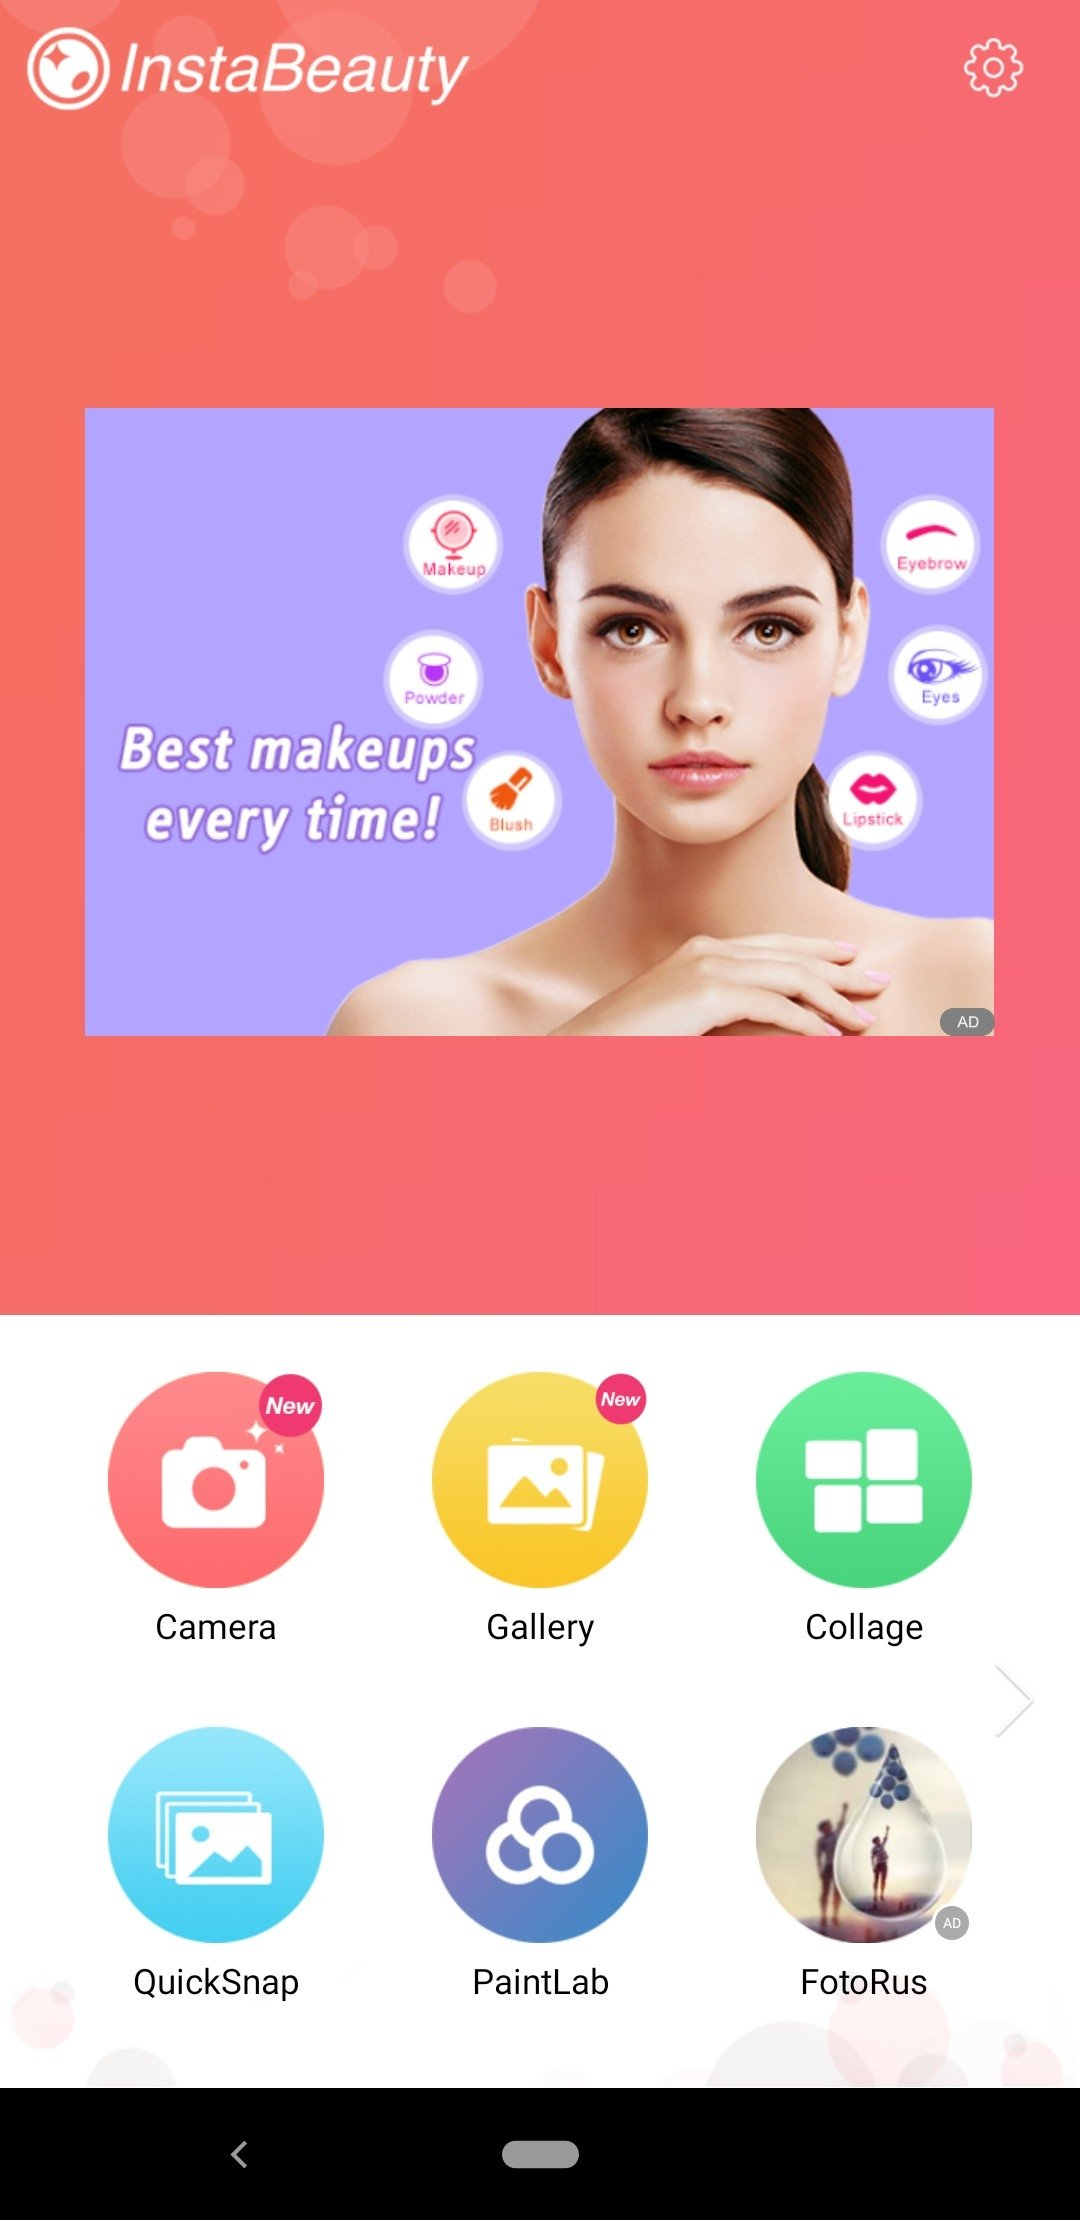 InstaBeauty - Selfie Camera Android image 6